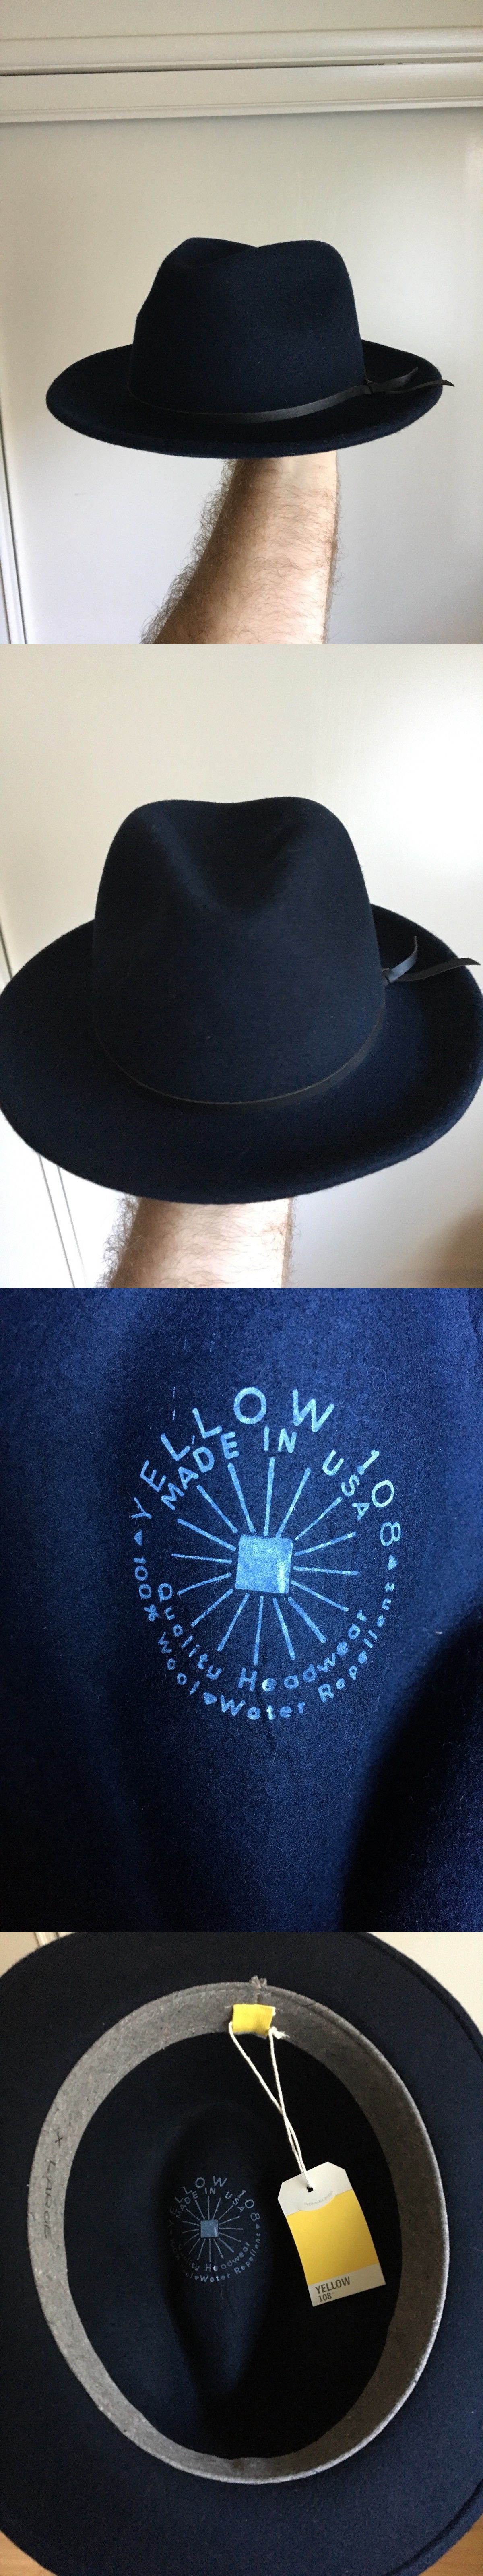 6a7a4735e675e Hats 163543  Yellow 108  Luke  Blue Navy Wool Fedora Xl Nwt Usa  90+ ...